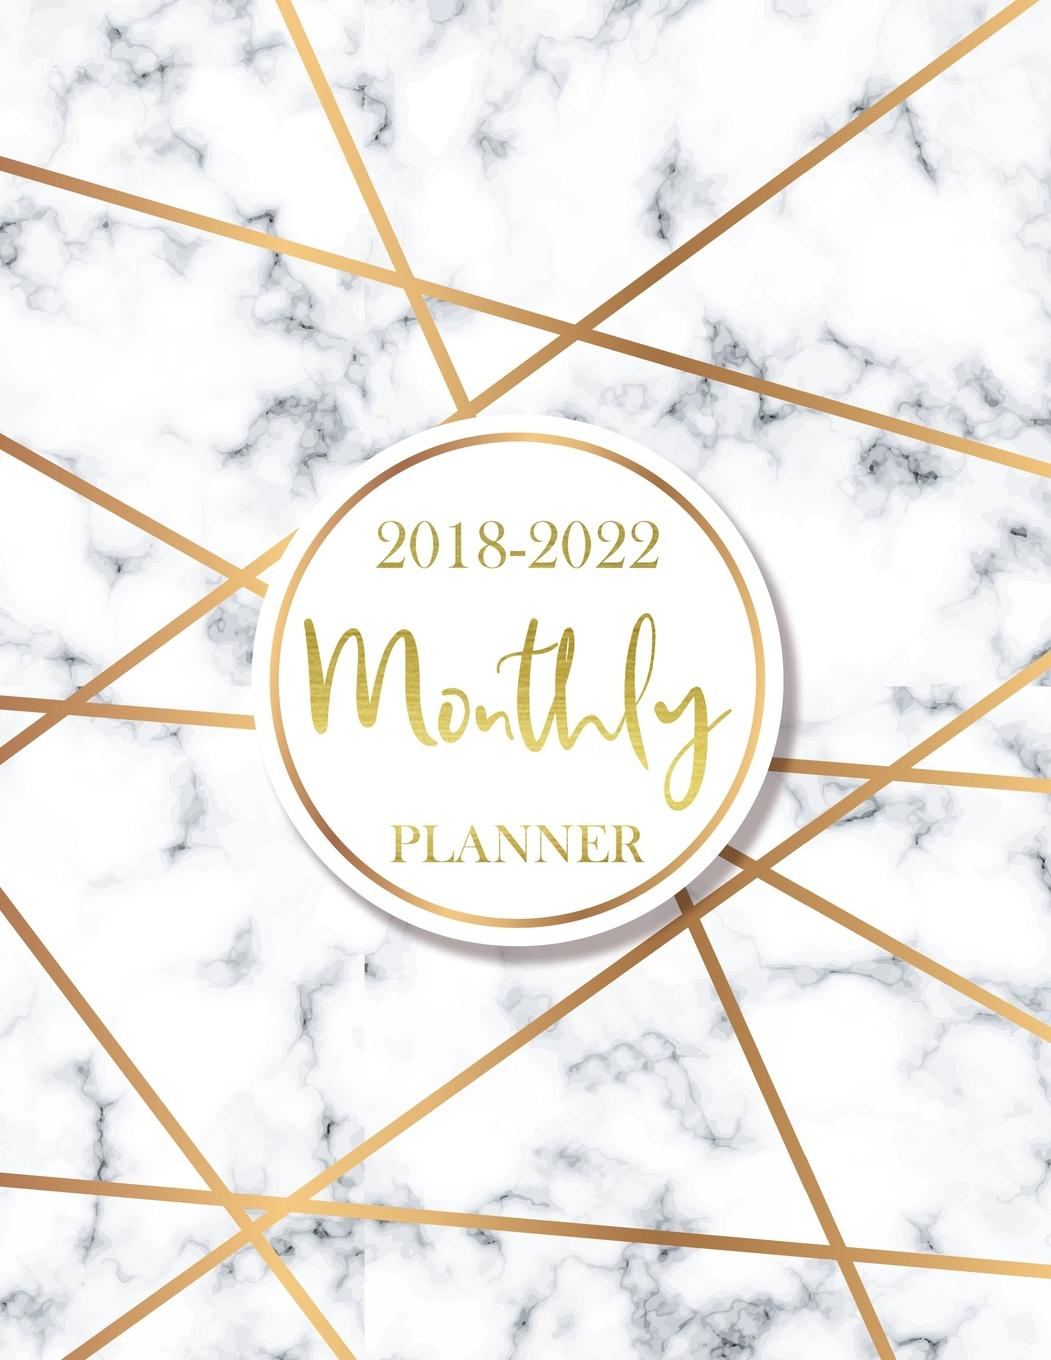 picture about Monthly Organizer titled 2018 - 2022 Regular Planner: 60 Weeks Calendar, Every month Routine Organizer Routine Planner for the Upcoming 5 Yrs, Appointment Laptop computer, Month to month